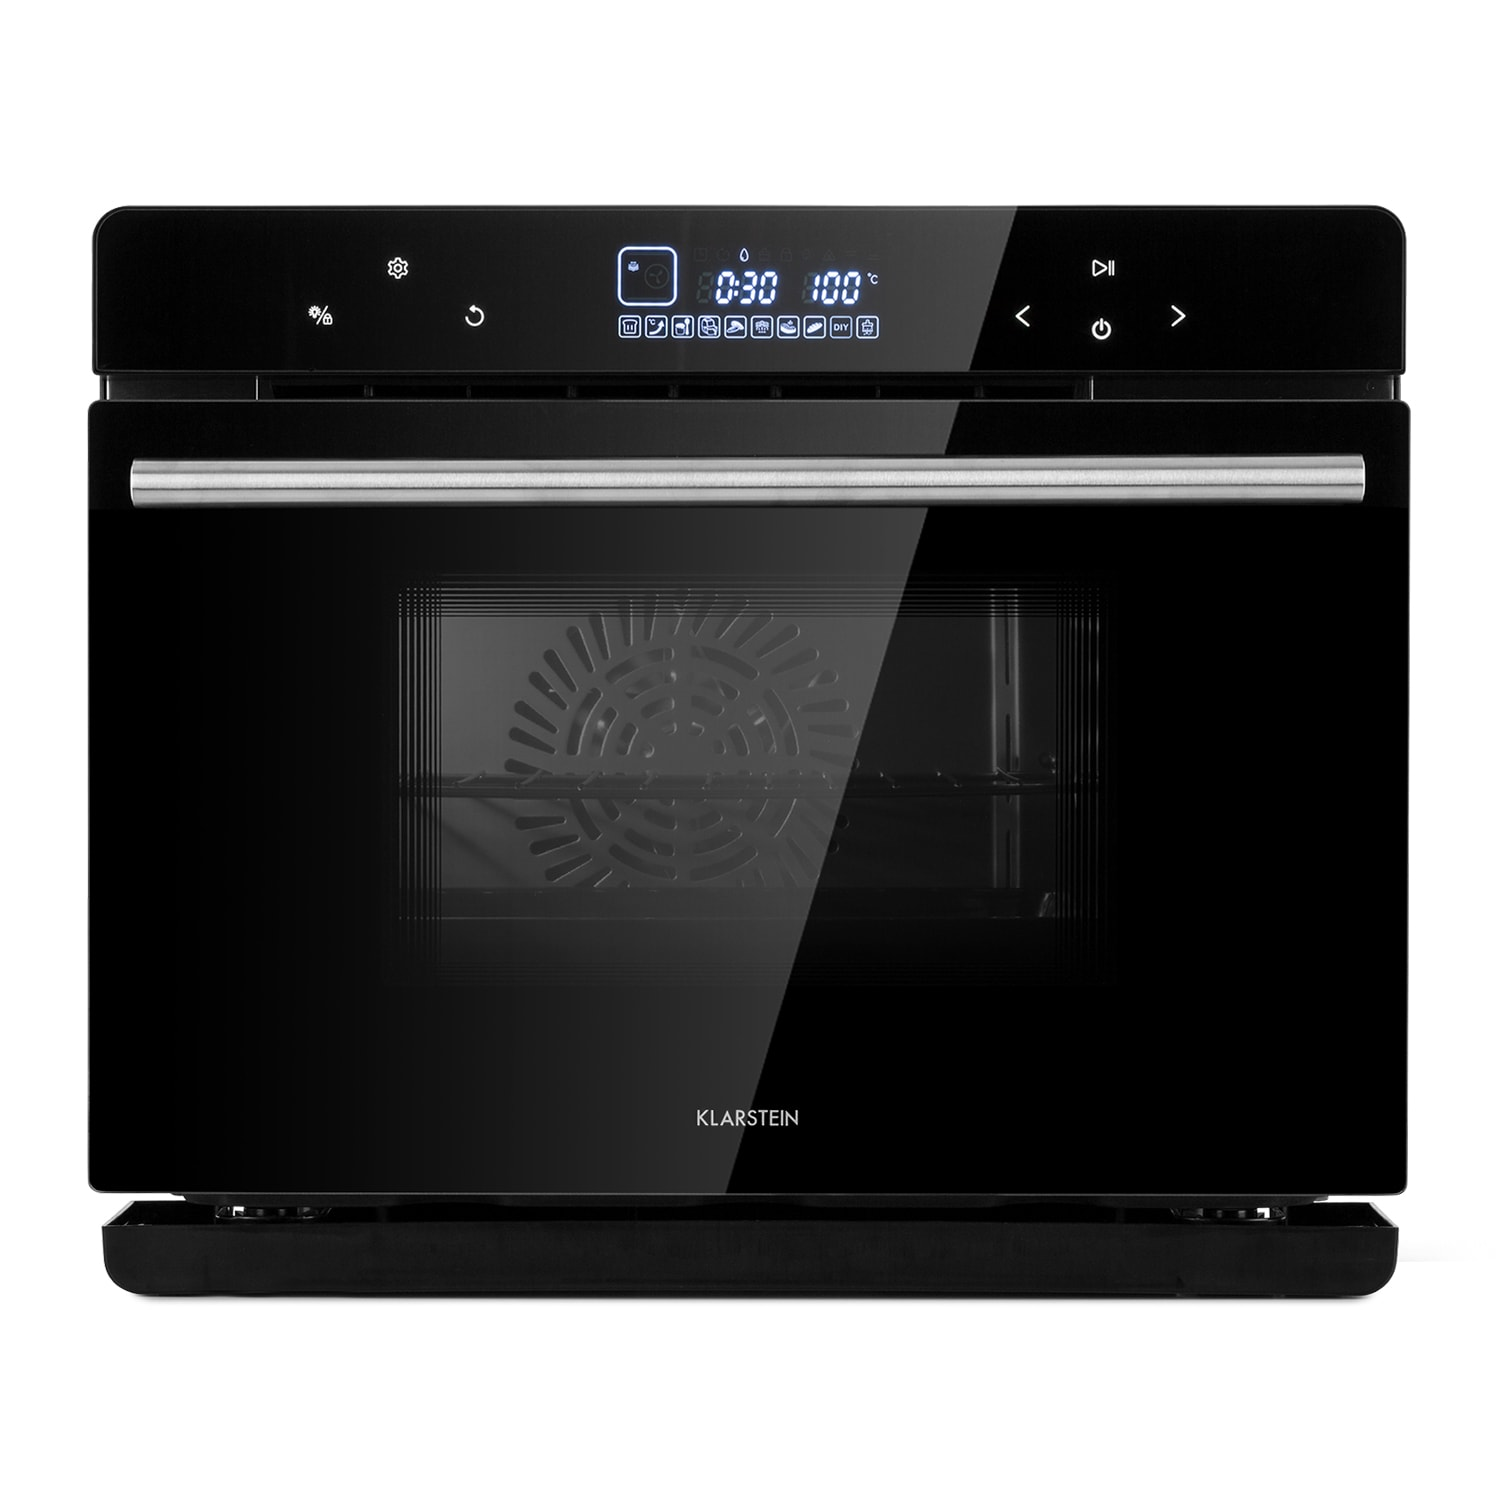 MasterFresh Steam Oven 230 ° C 24l Touch Control Panel Black